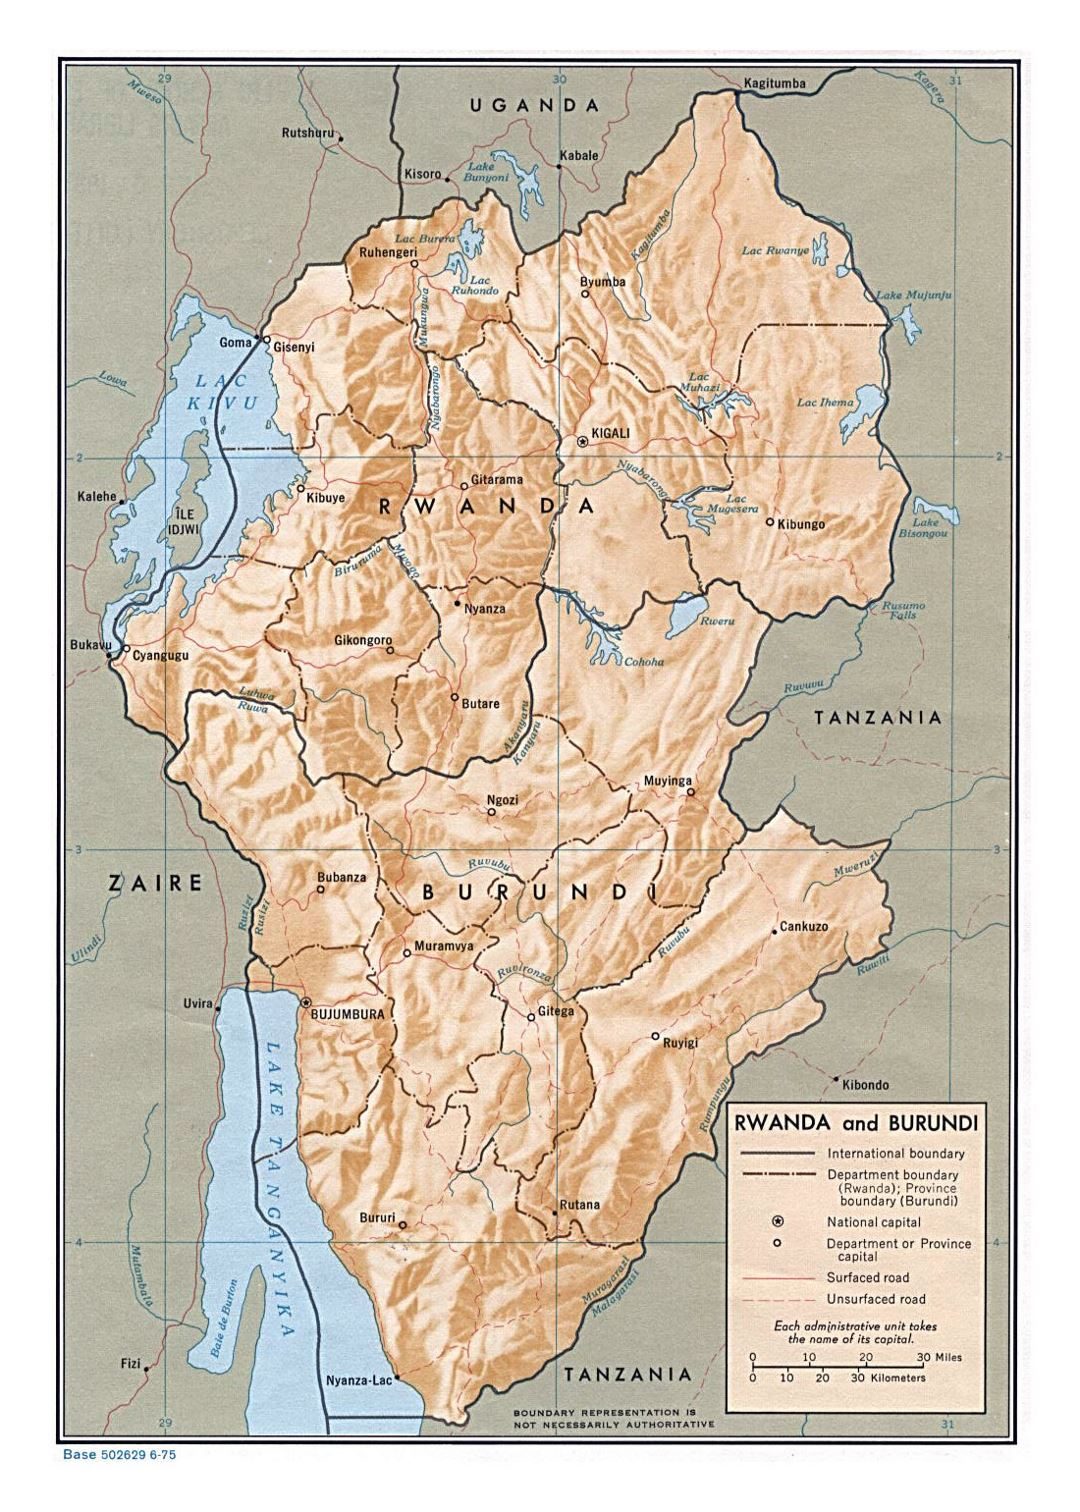 Detailed political and administrative map of Rwanda and Burundi with relief, roads and major cities - 1975